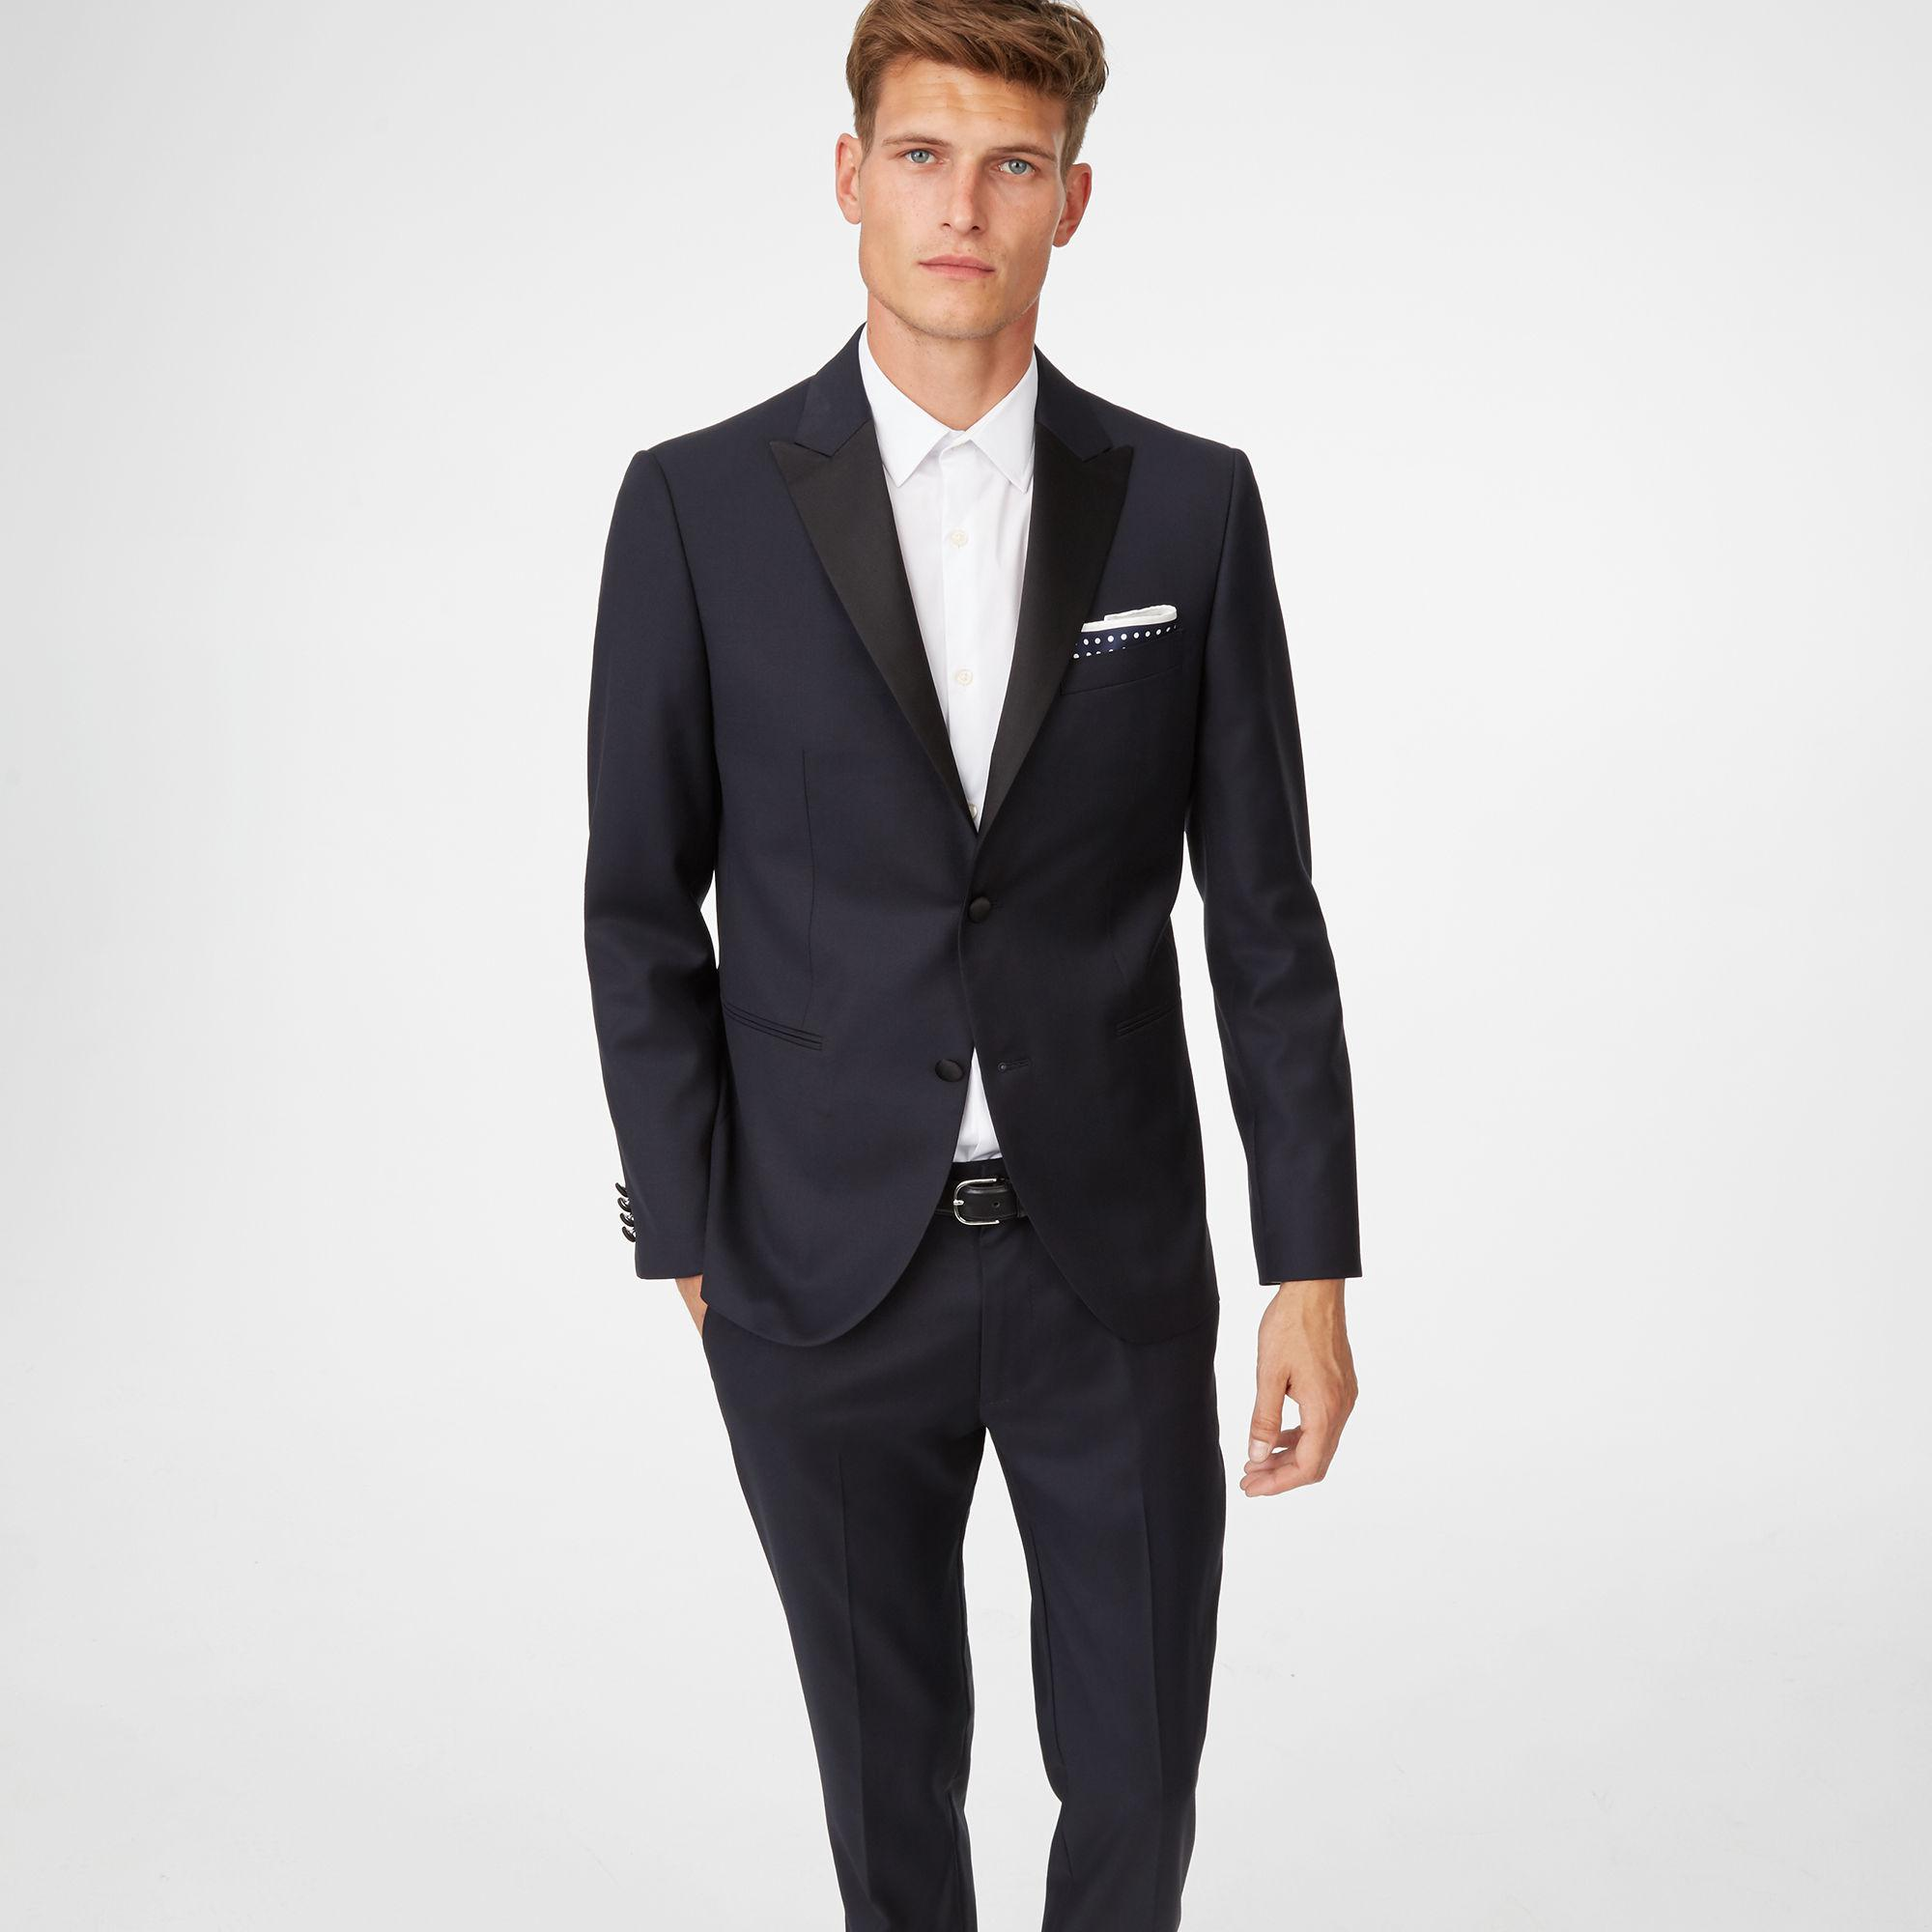 Men's Tuxedos For any well-dressed man, a party is a great time to impress. Whether you are picking up your date for a wedding or impressing potential clients at dinner, it's important to look the part.